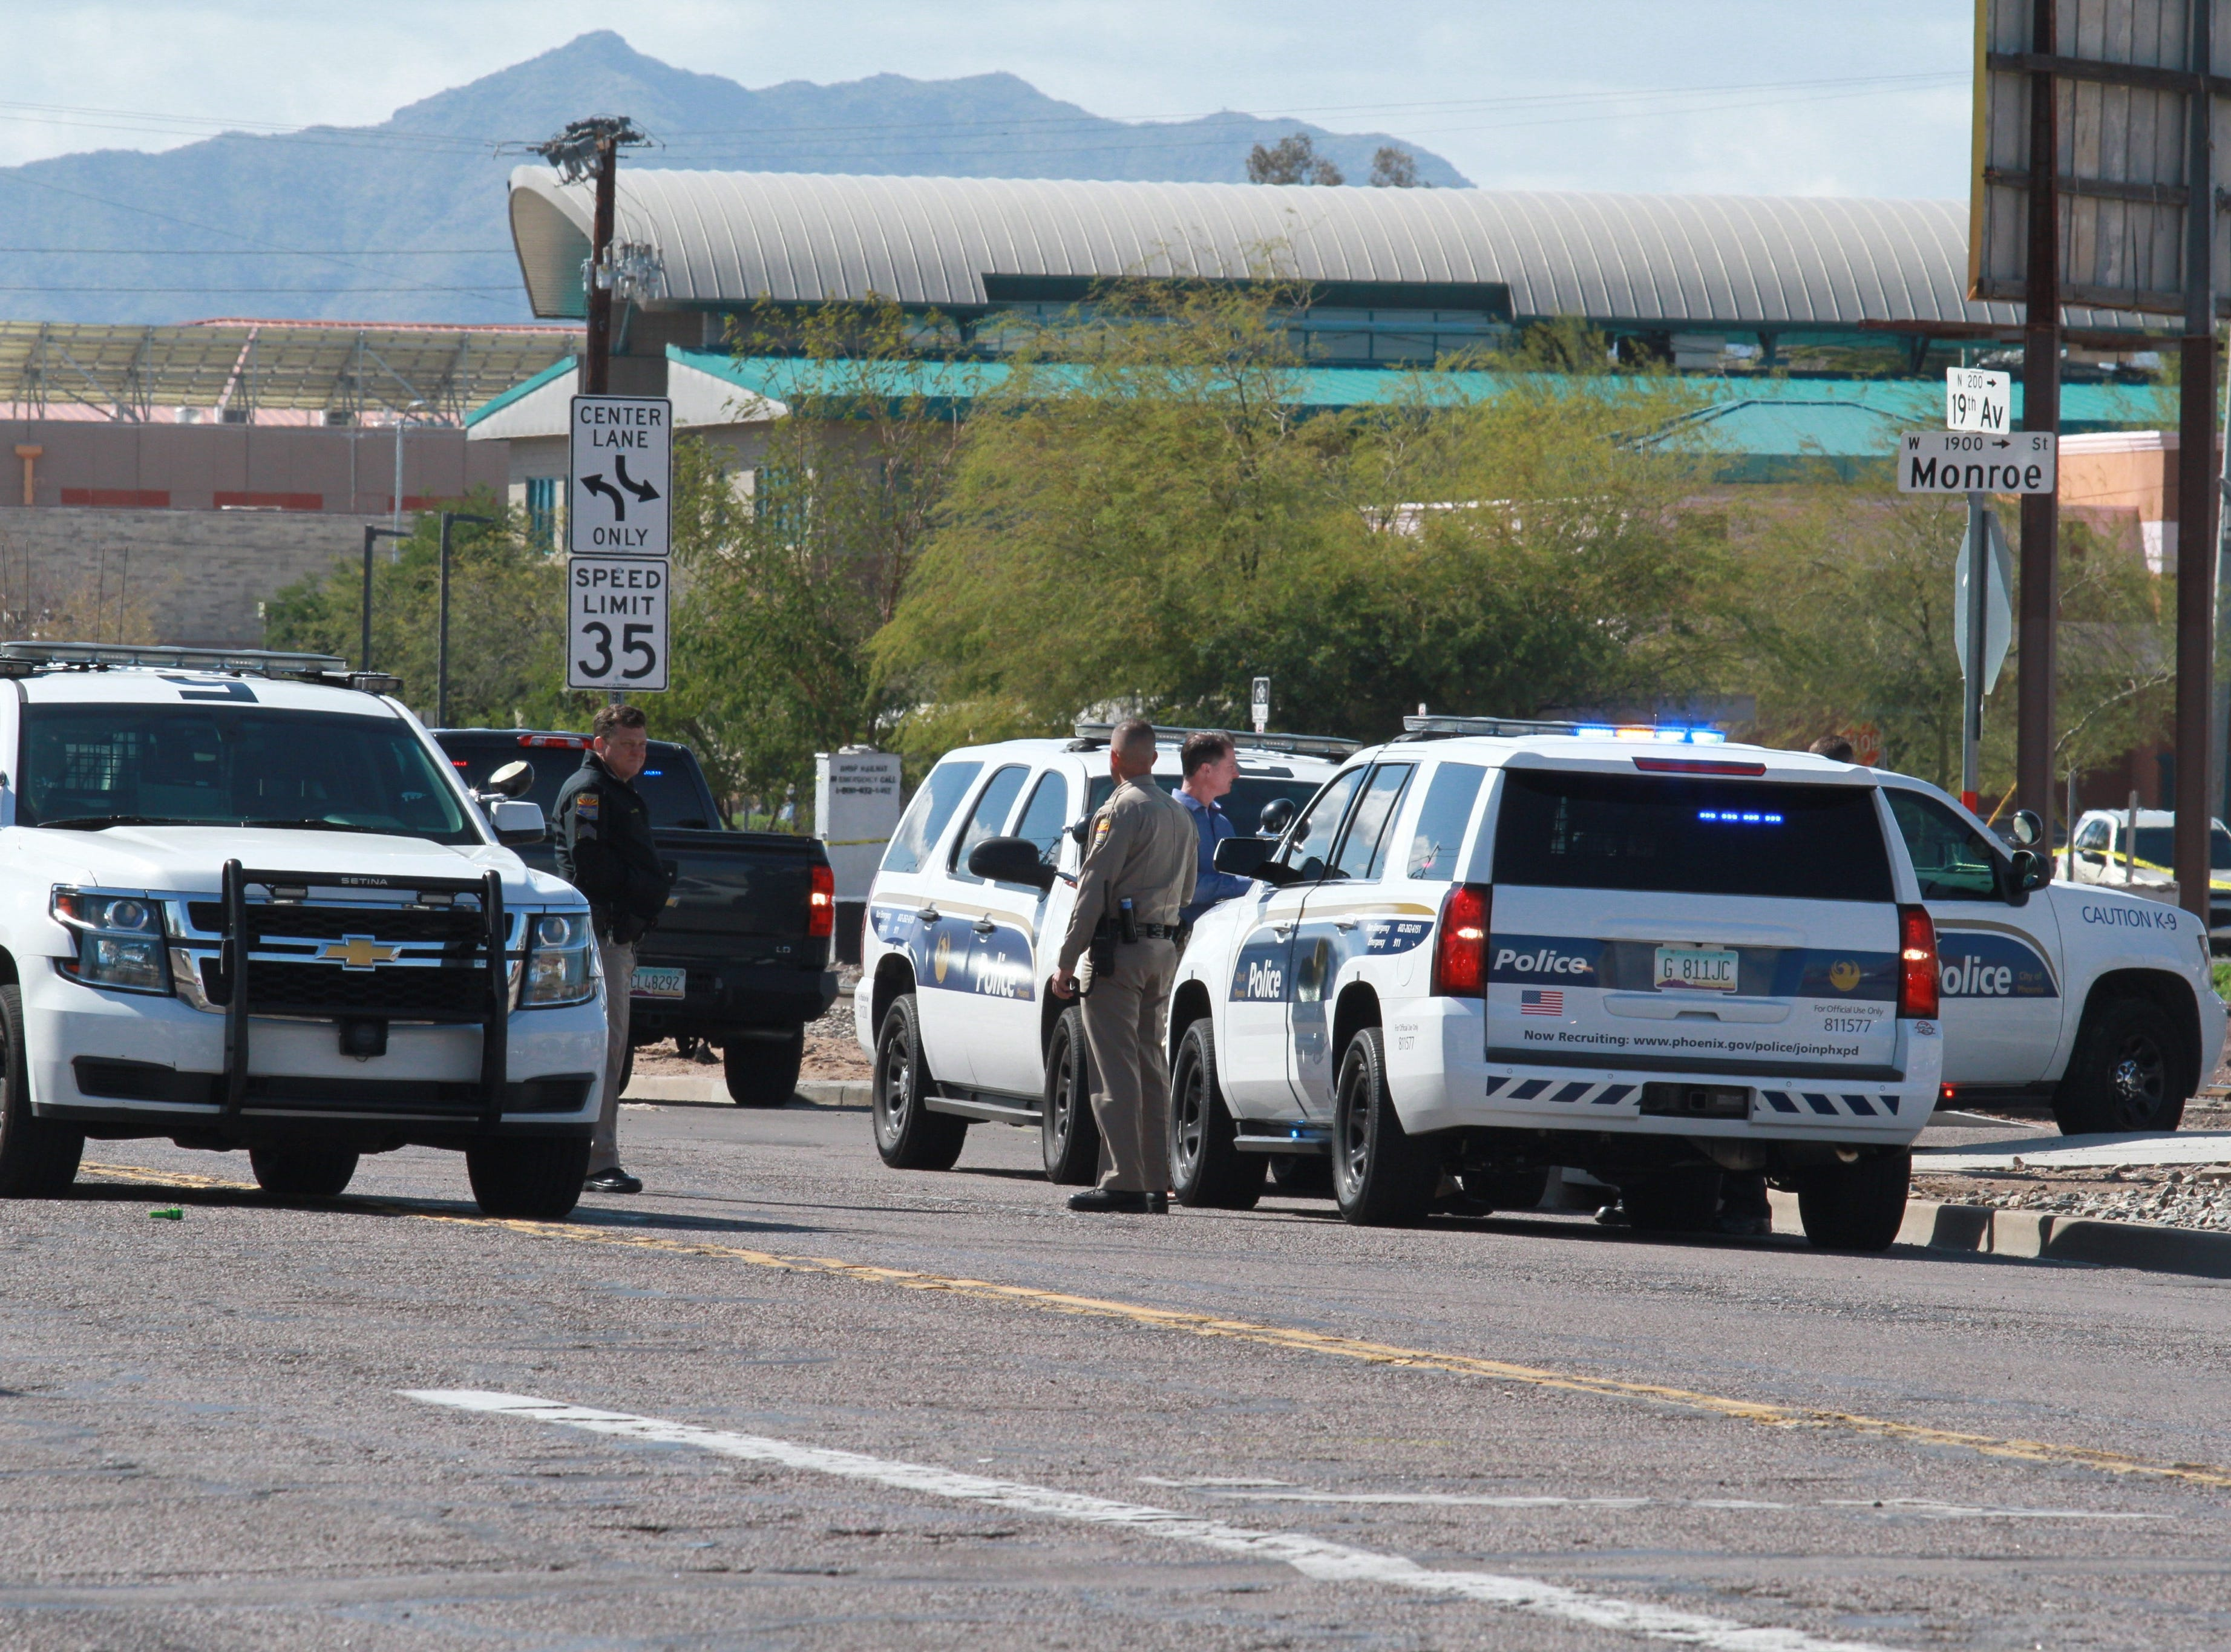 Phoenix Police Department officials at the scene of an officer-involved shooting near 19th Avenue and Monroe Street.